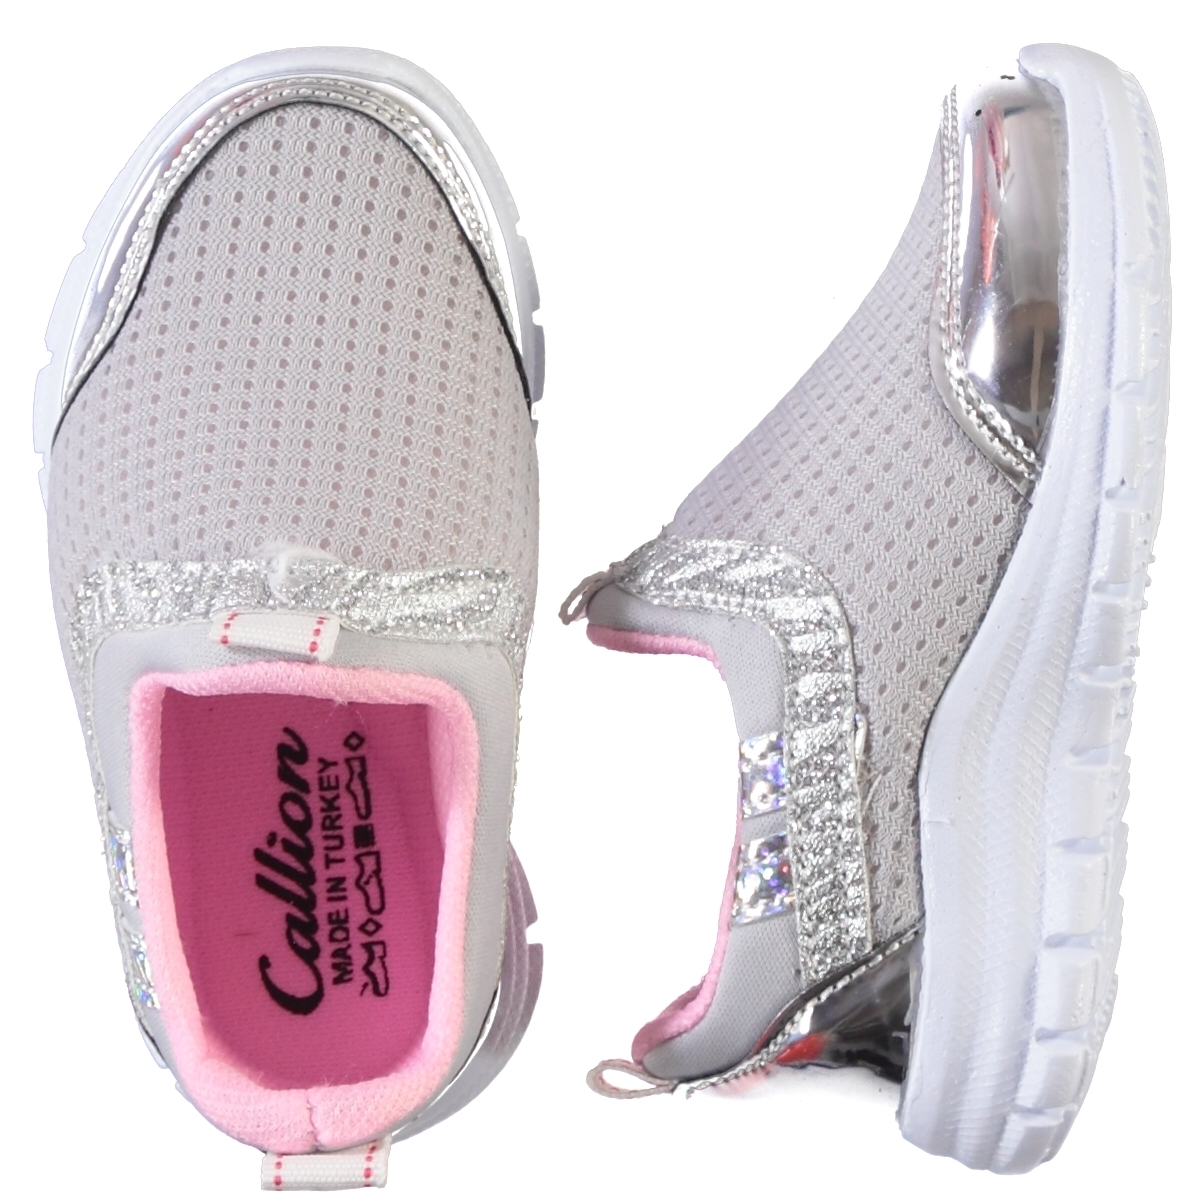 Callion Baby Girl Sneakers Gray 22-25 Number